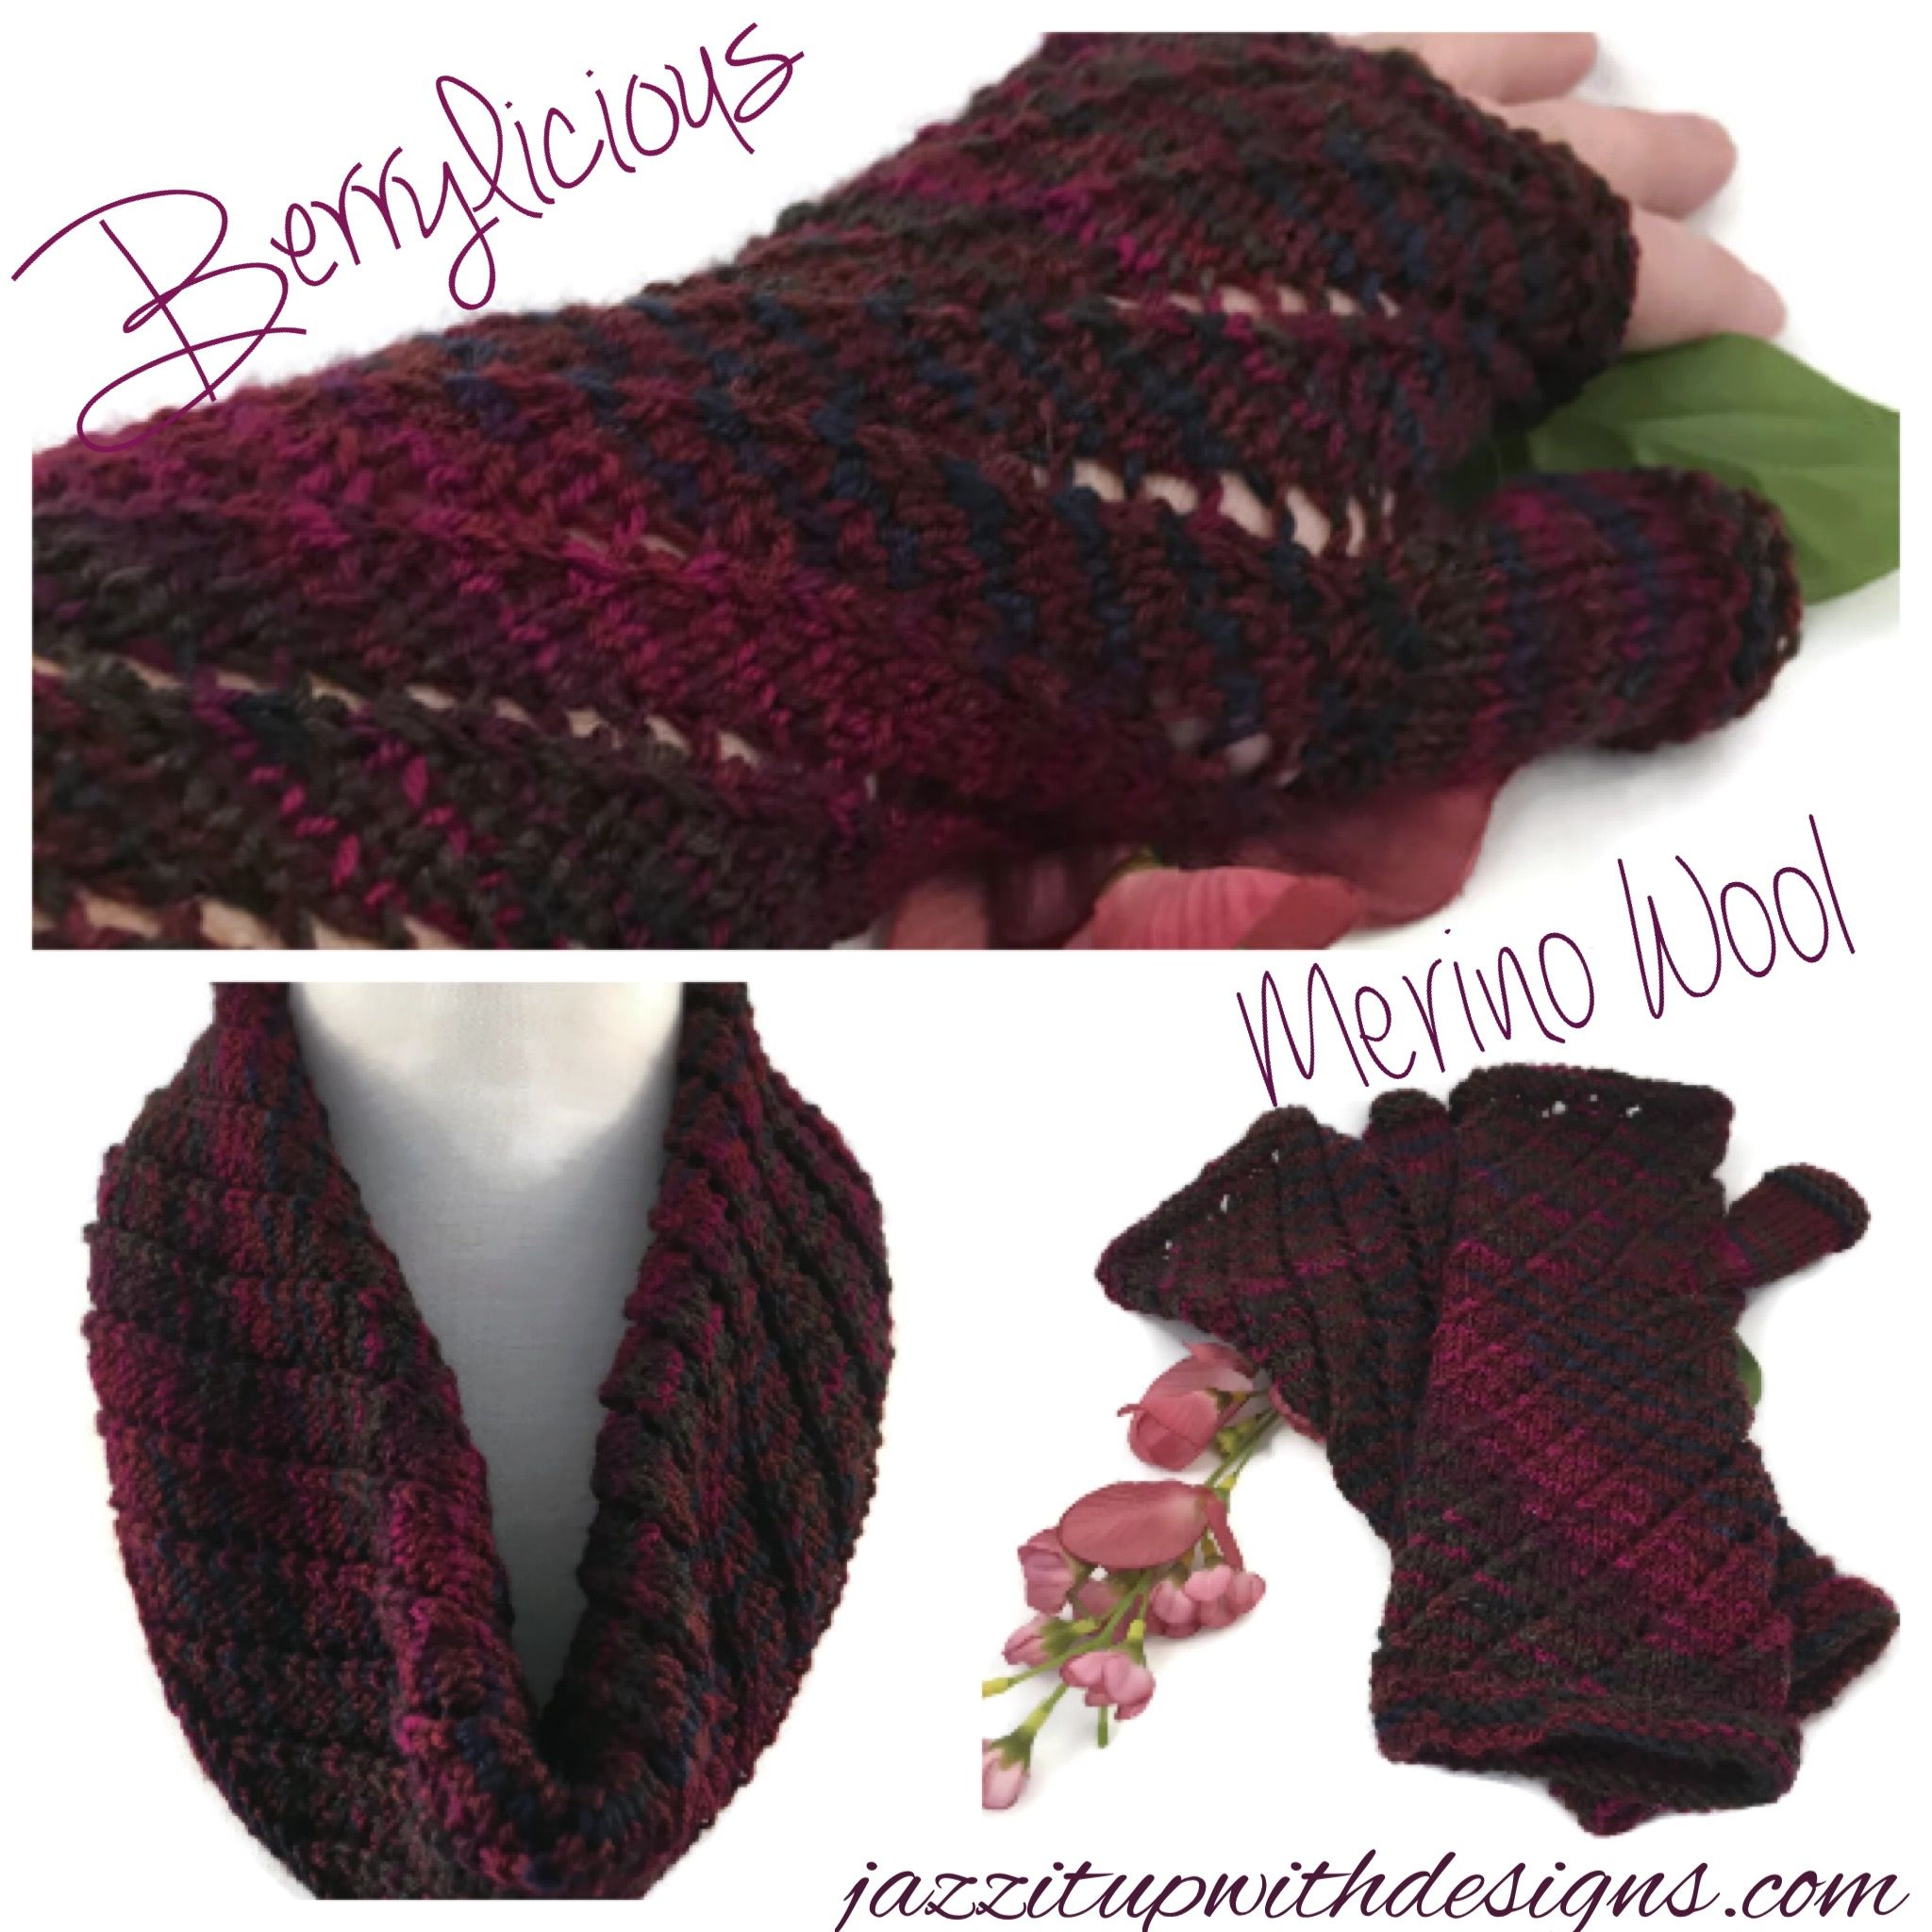 Infinity Scarf and fingerless glove set berry wine merino wool twisted pattern